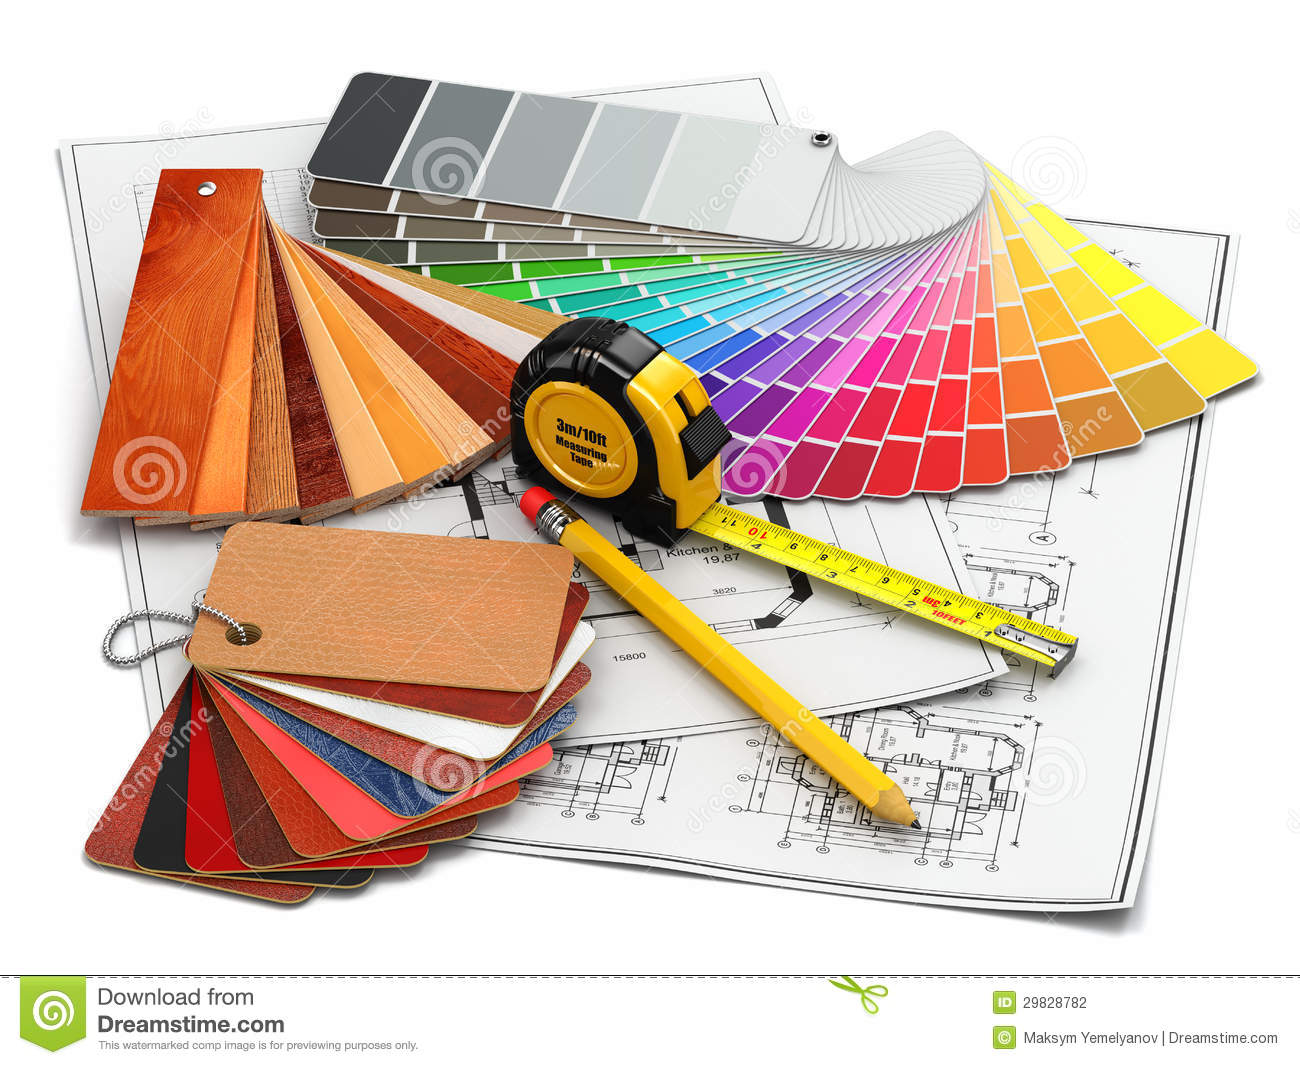 Interior design architectural materials tools and Building design tool